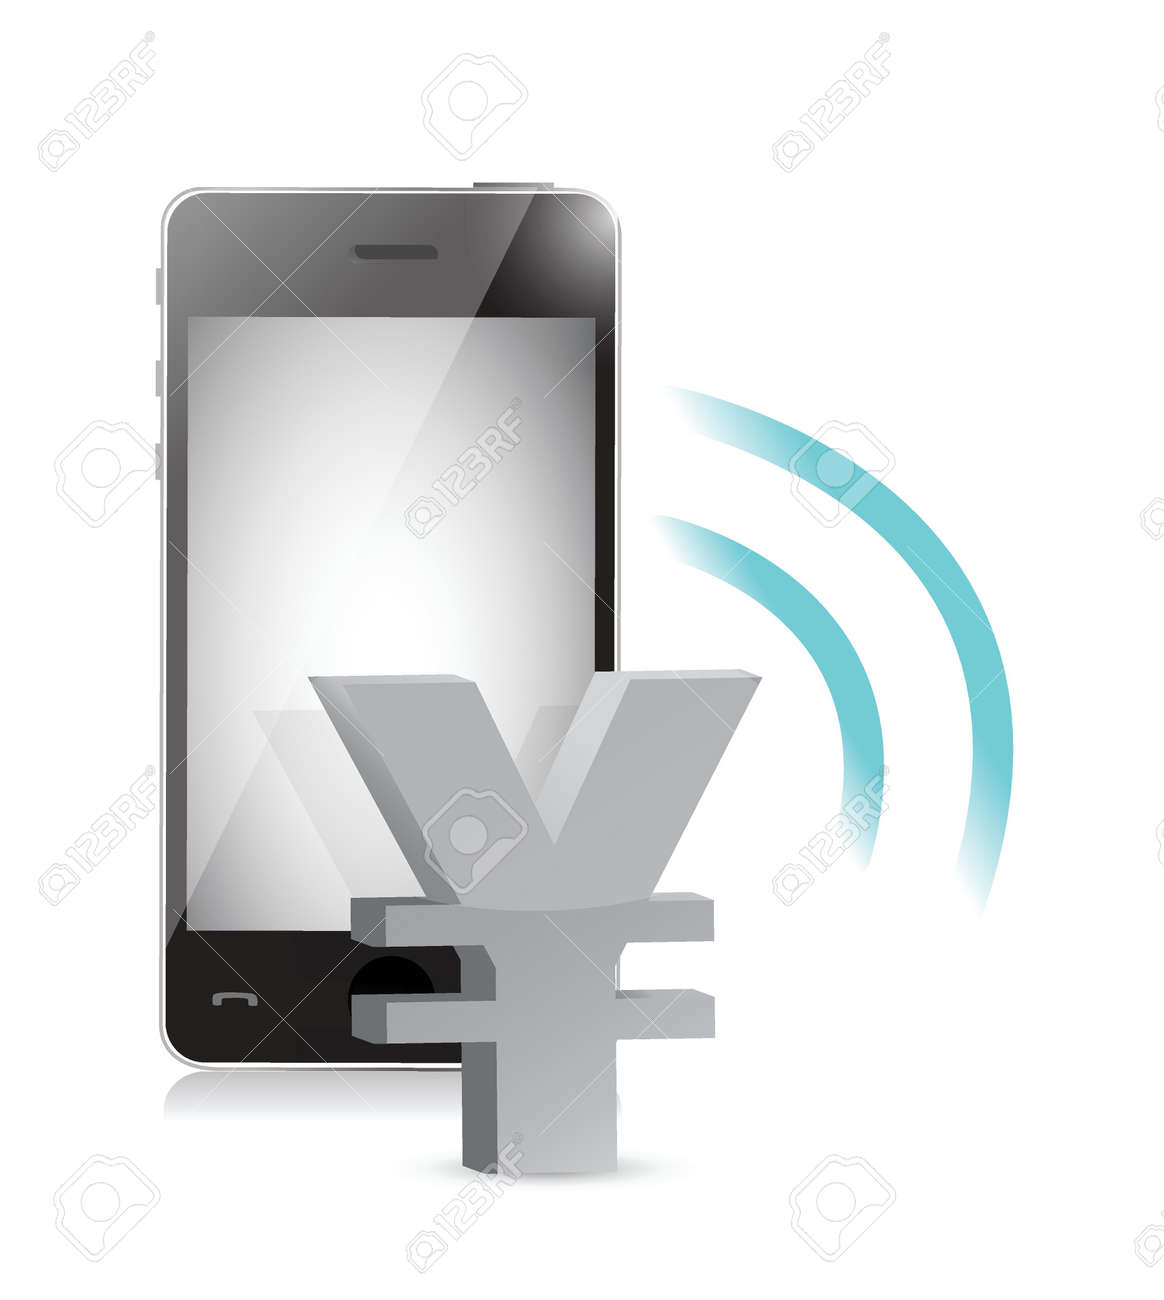 yen currency management on a mobile phone illustration Stock Vector - 20662391